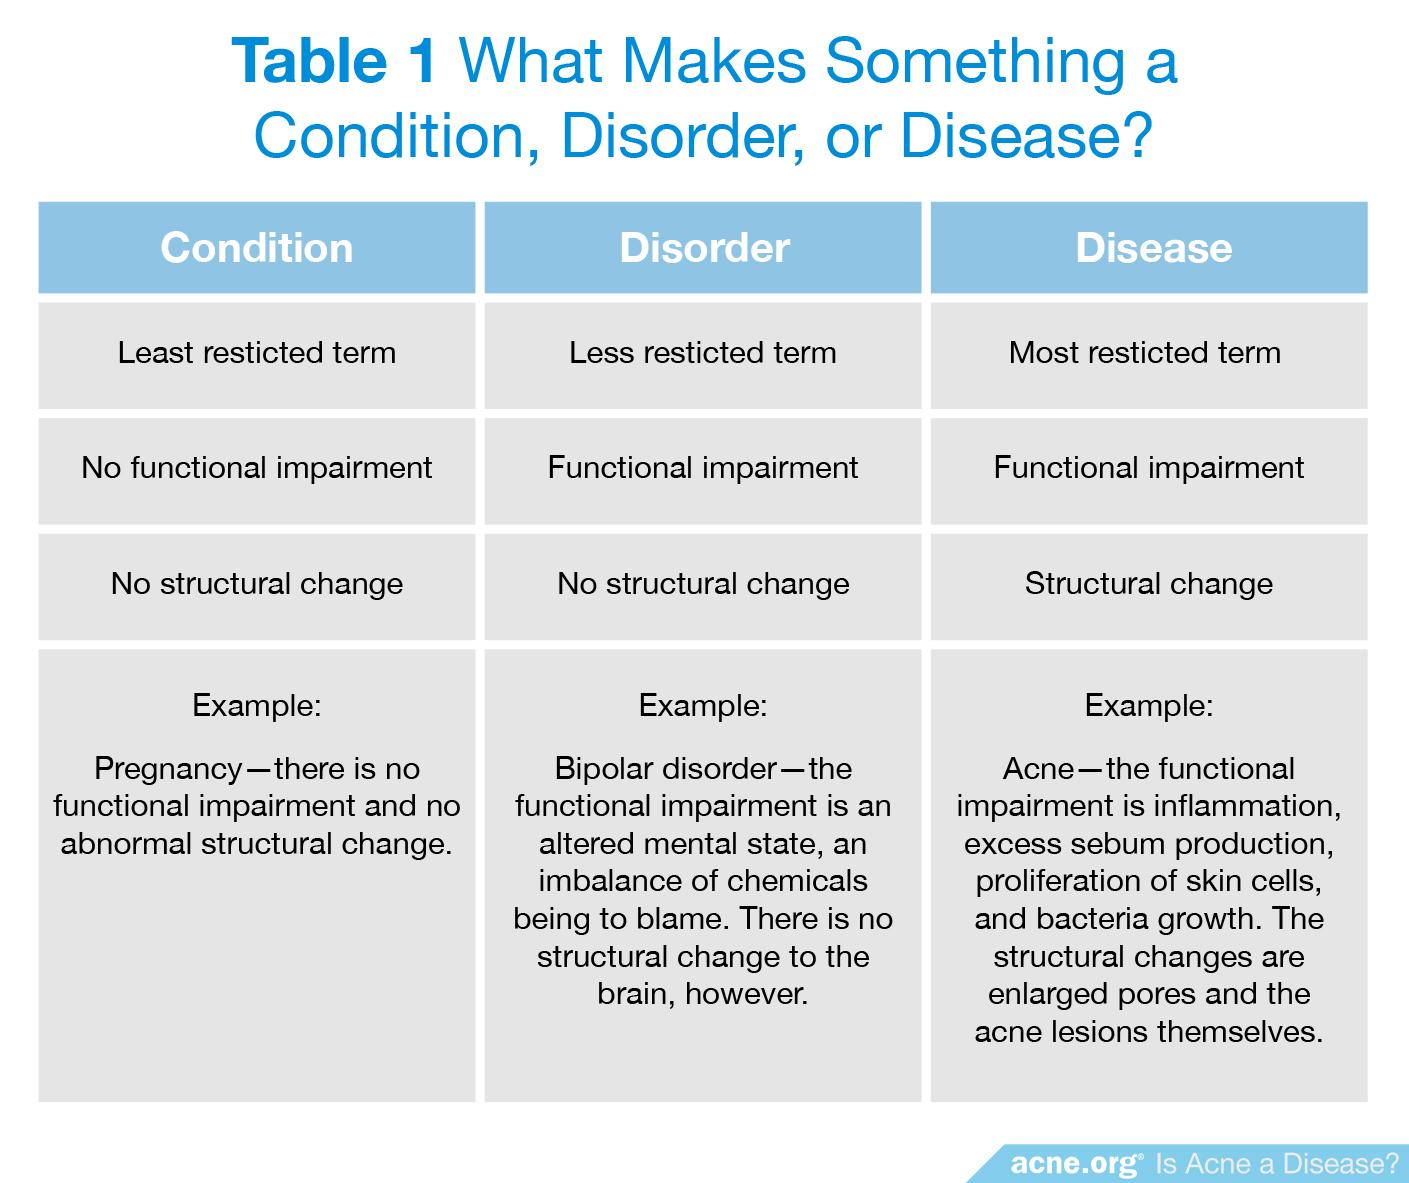 What Makes Something a Condition, Order, or Disease?